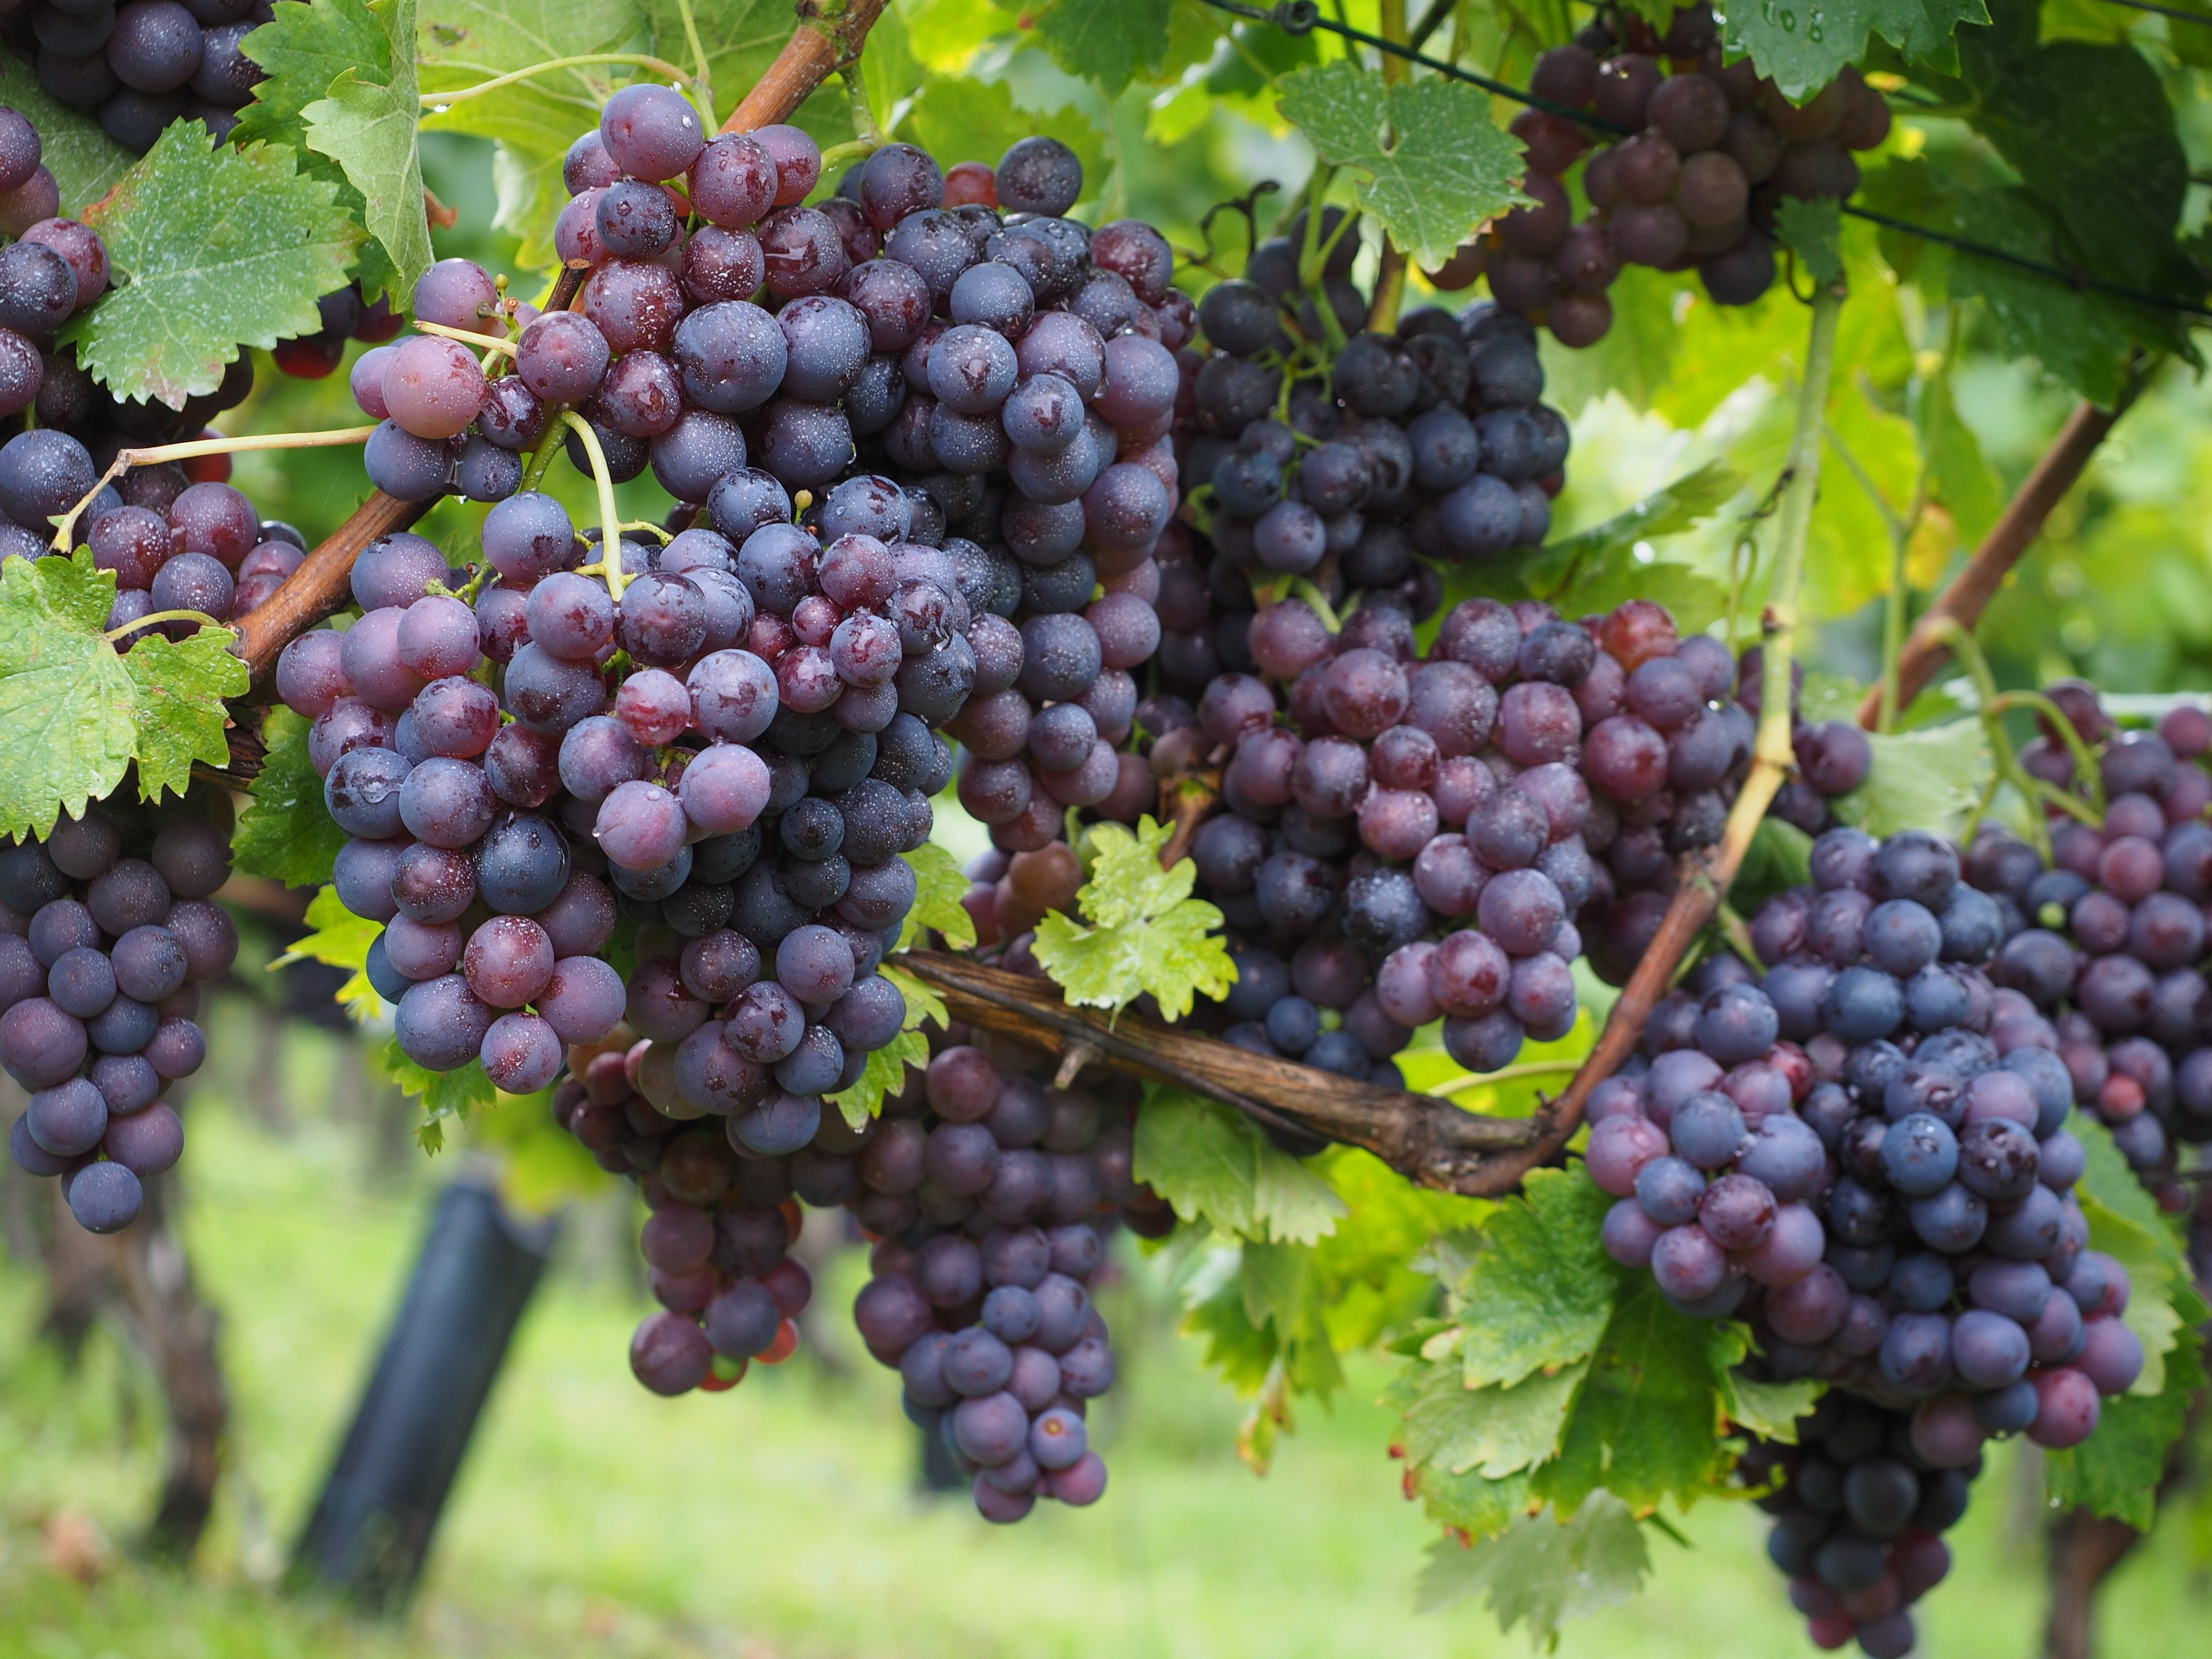 wine-berries-694196.jpg